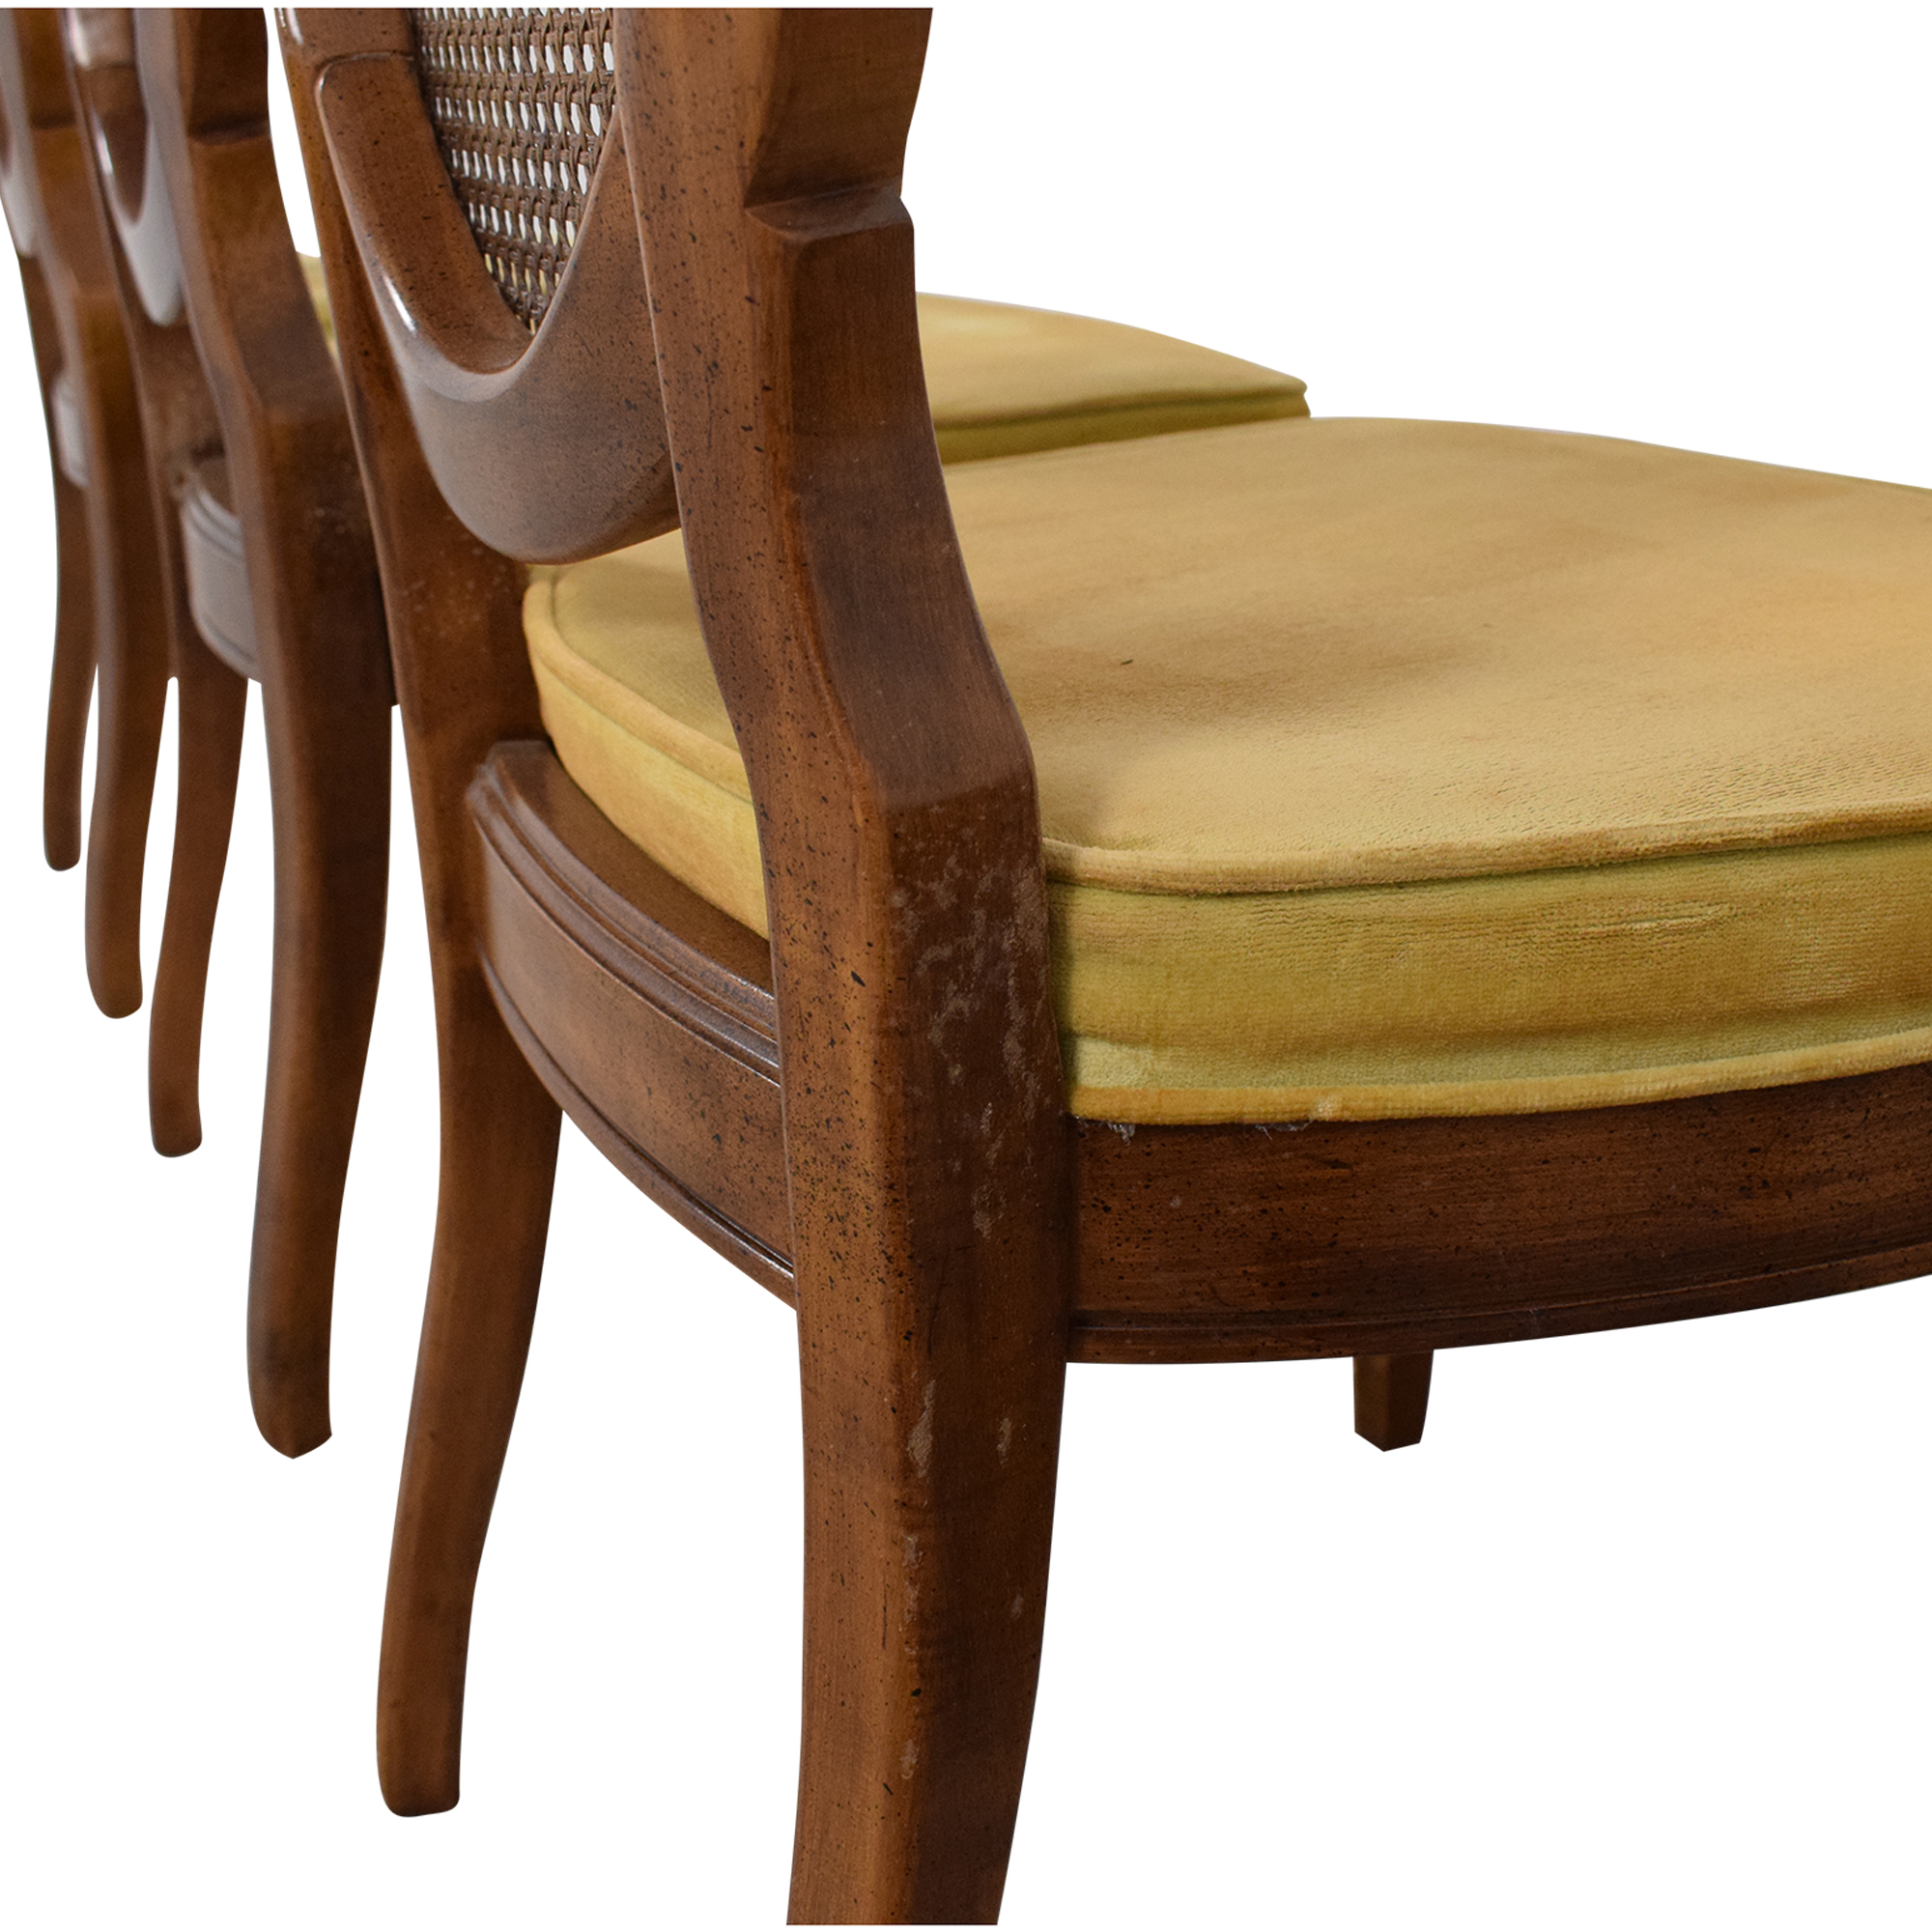 Thomasville Thomasville Italian Provincial Style Dining Chairs brown & yellow